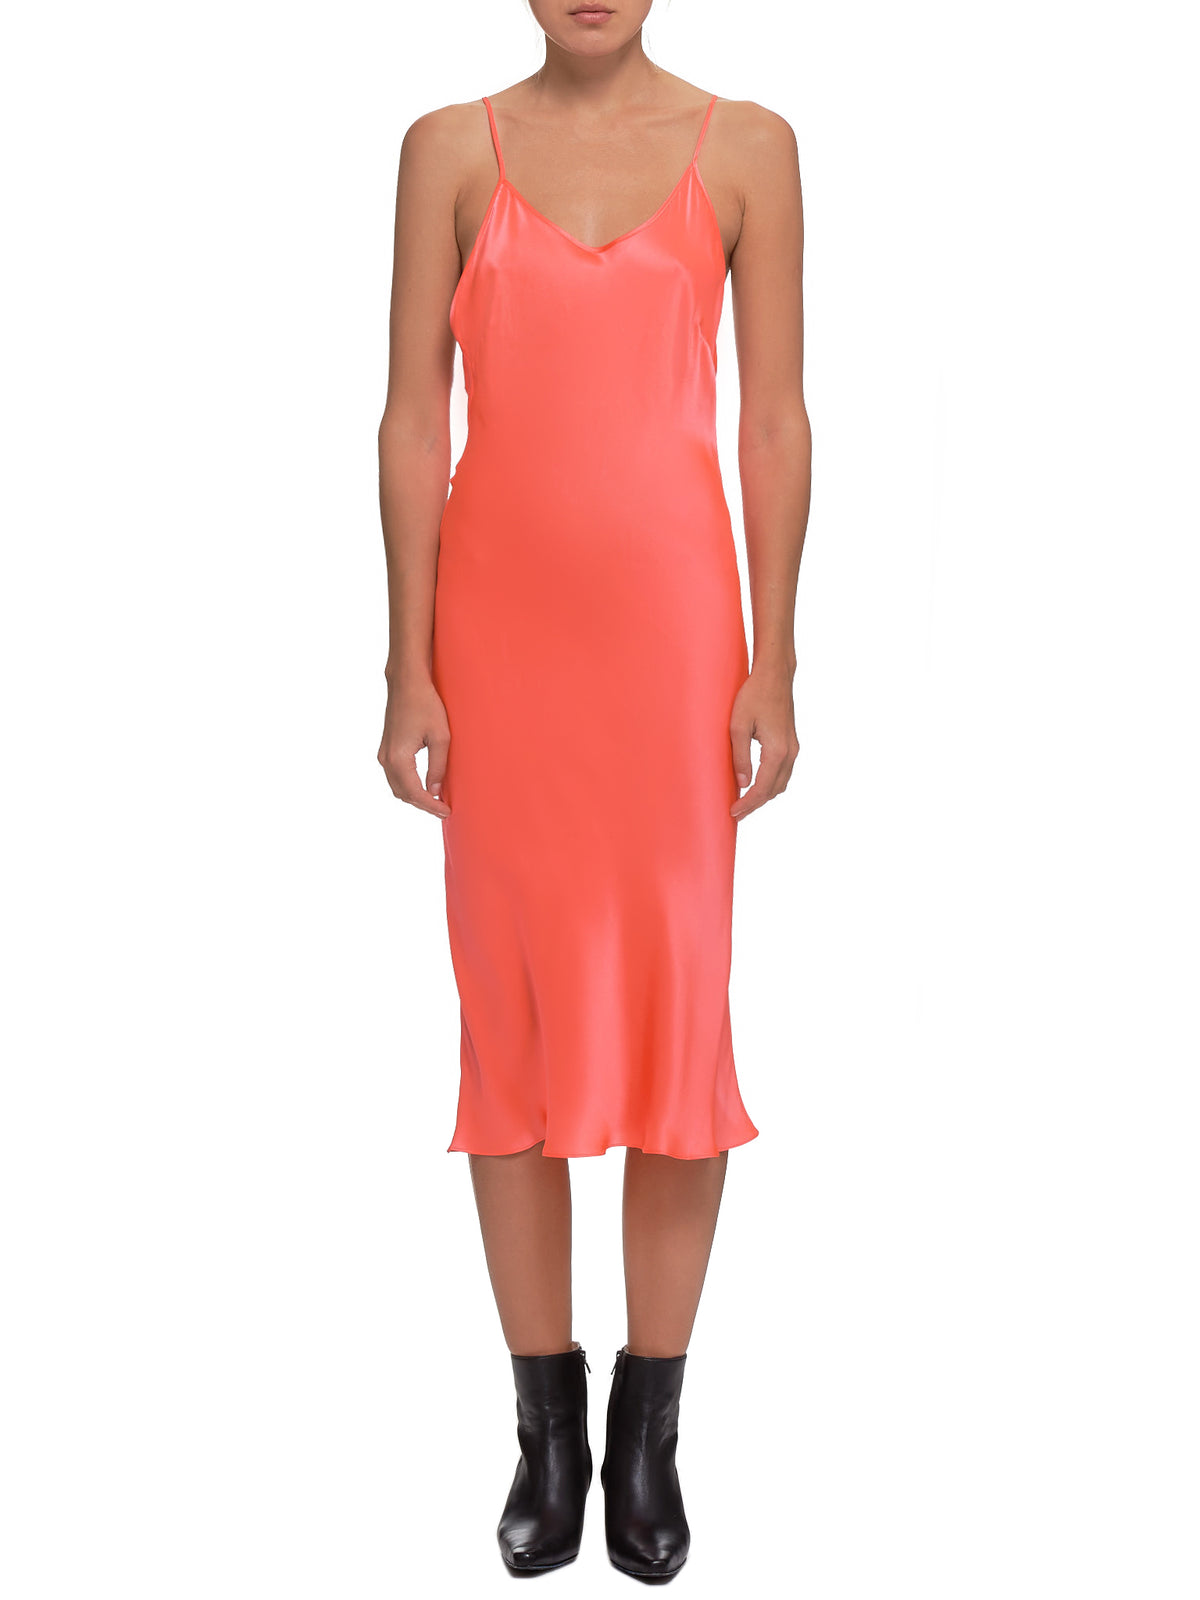 Satin Dress (#003054-#005-NEON-ORANGE)